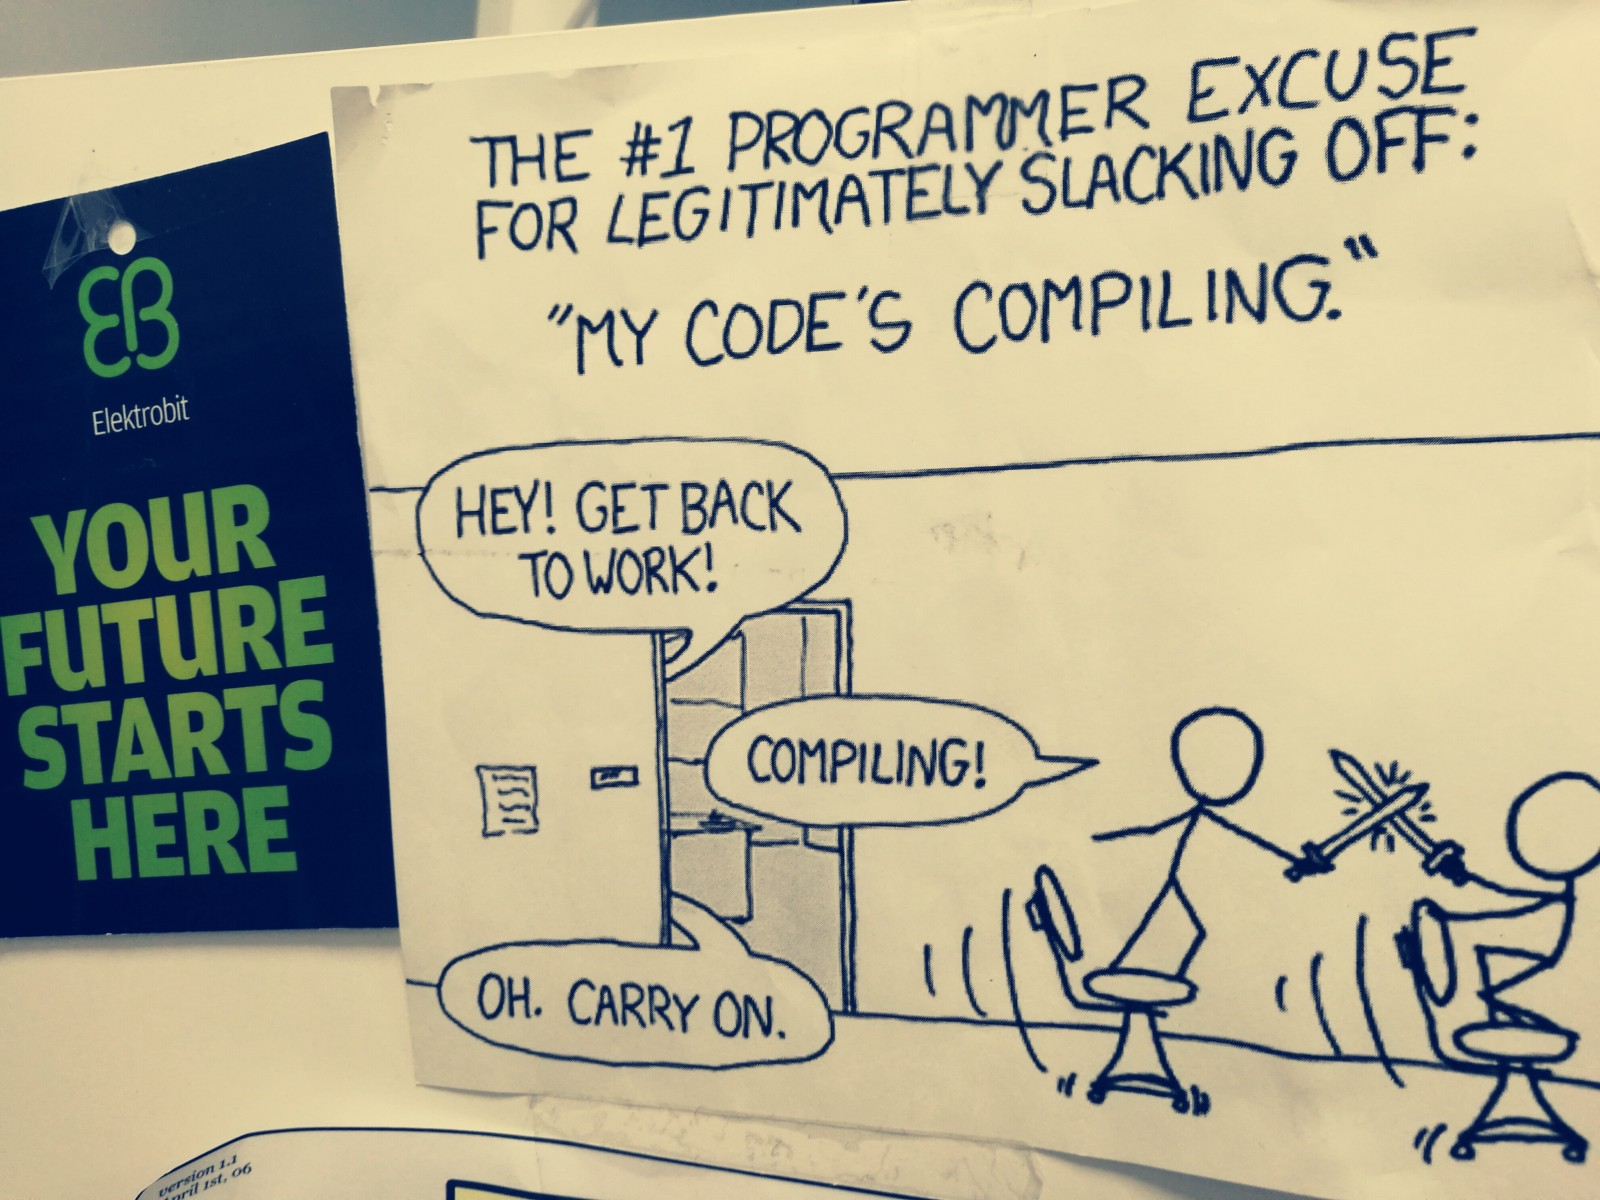 Week in the life of a Software Expert (and father) - By Heikki Hellgren